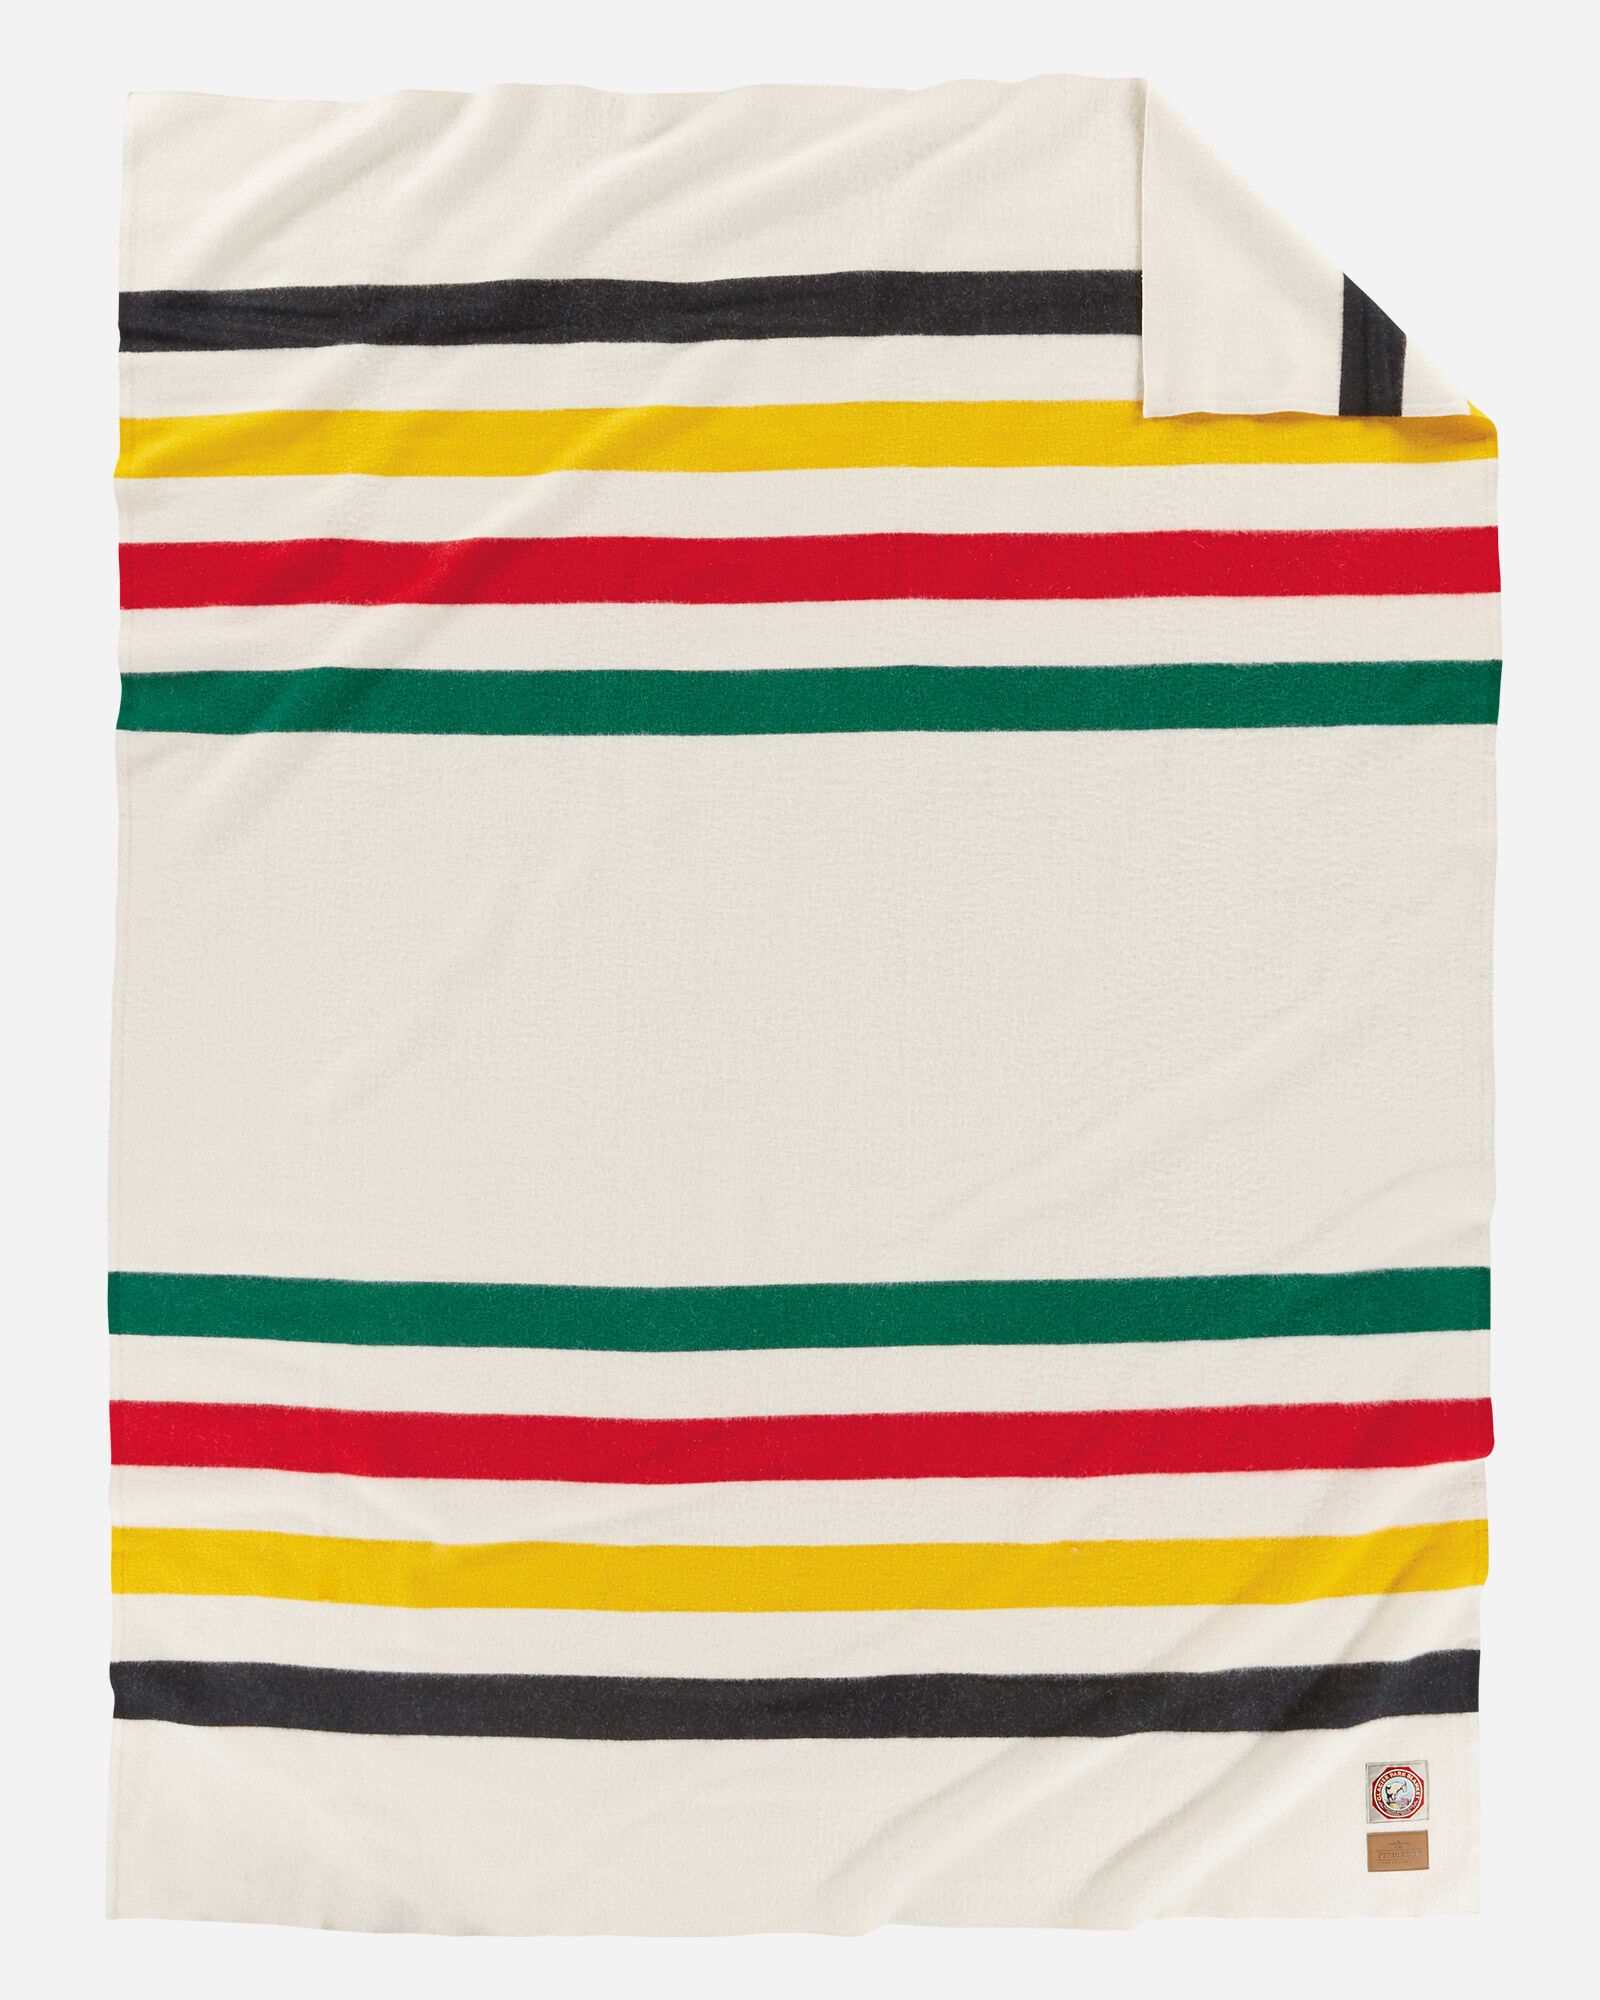 A Hudson's Bay point blanket is a type of wool blanket traded by the Hudson's Bay Company (HBC) in British North America (now Canada) and the United States during the s and s. The company is named for the Hudson Bay and the blankets were typically traded to First Nations in exchange for beaver pelts. The blankets continue to be sold by Canada's Hudson's Bay stores and have come to hold.